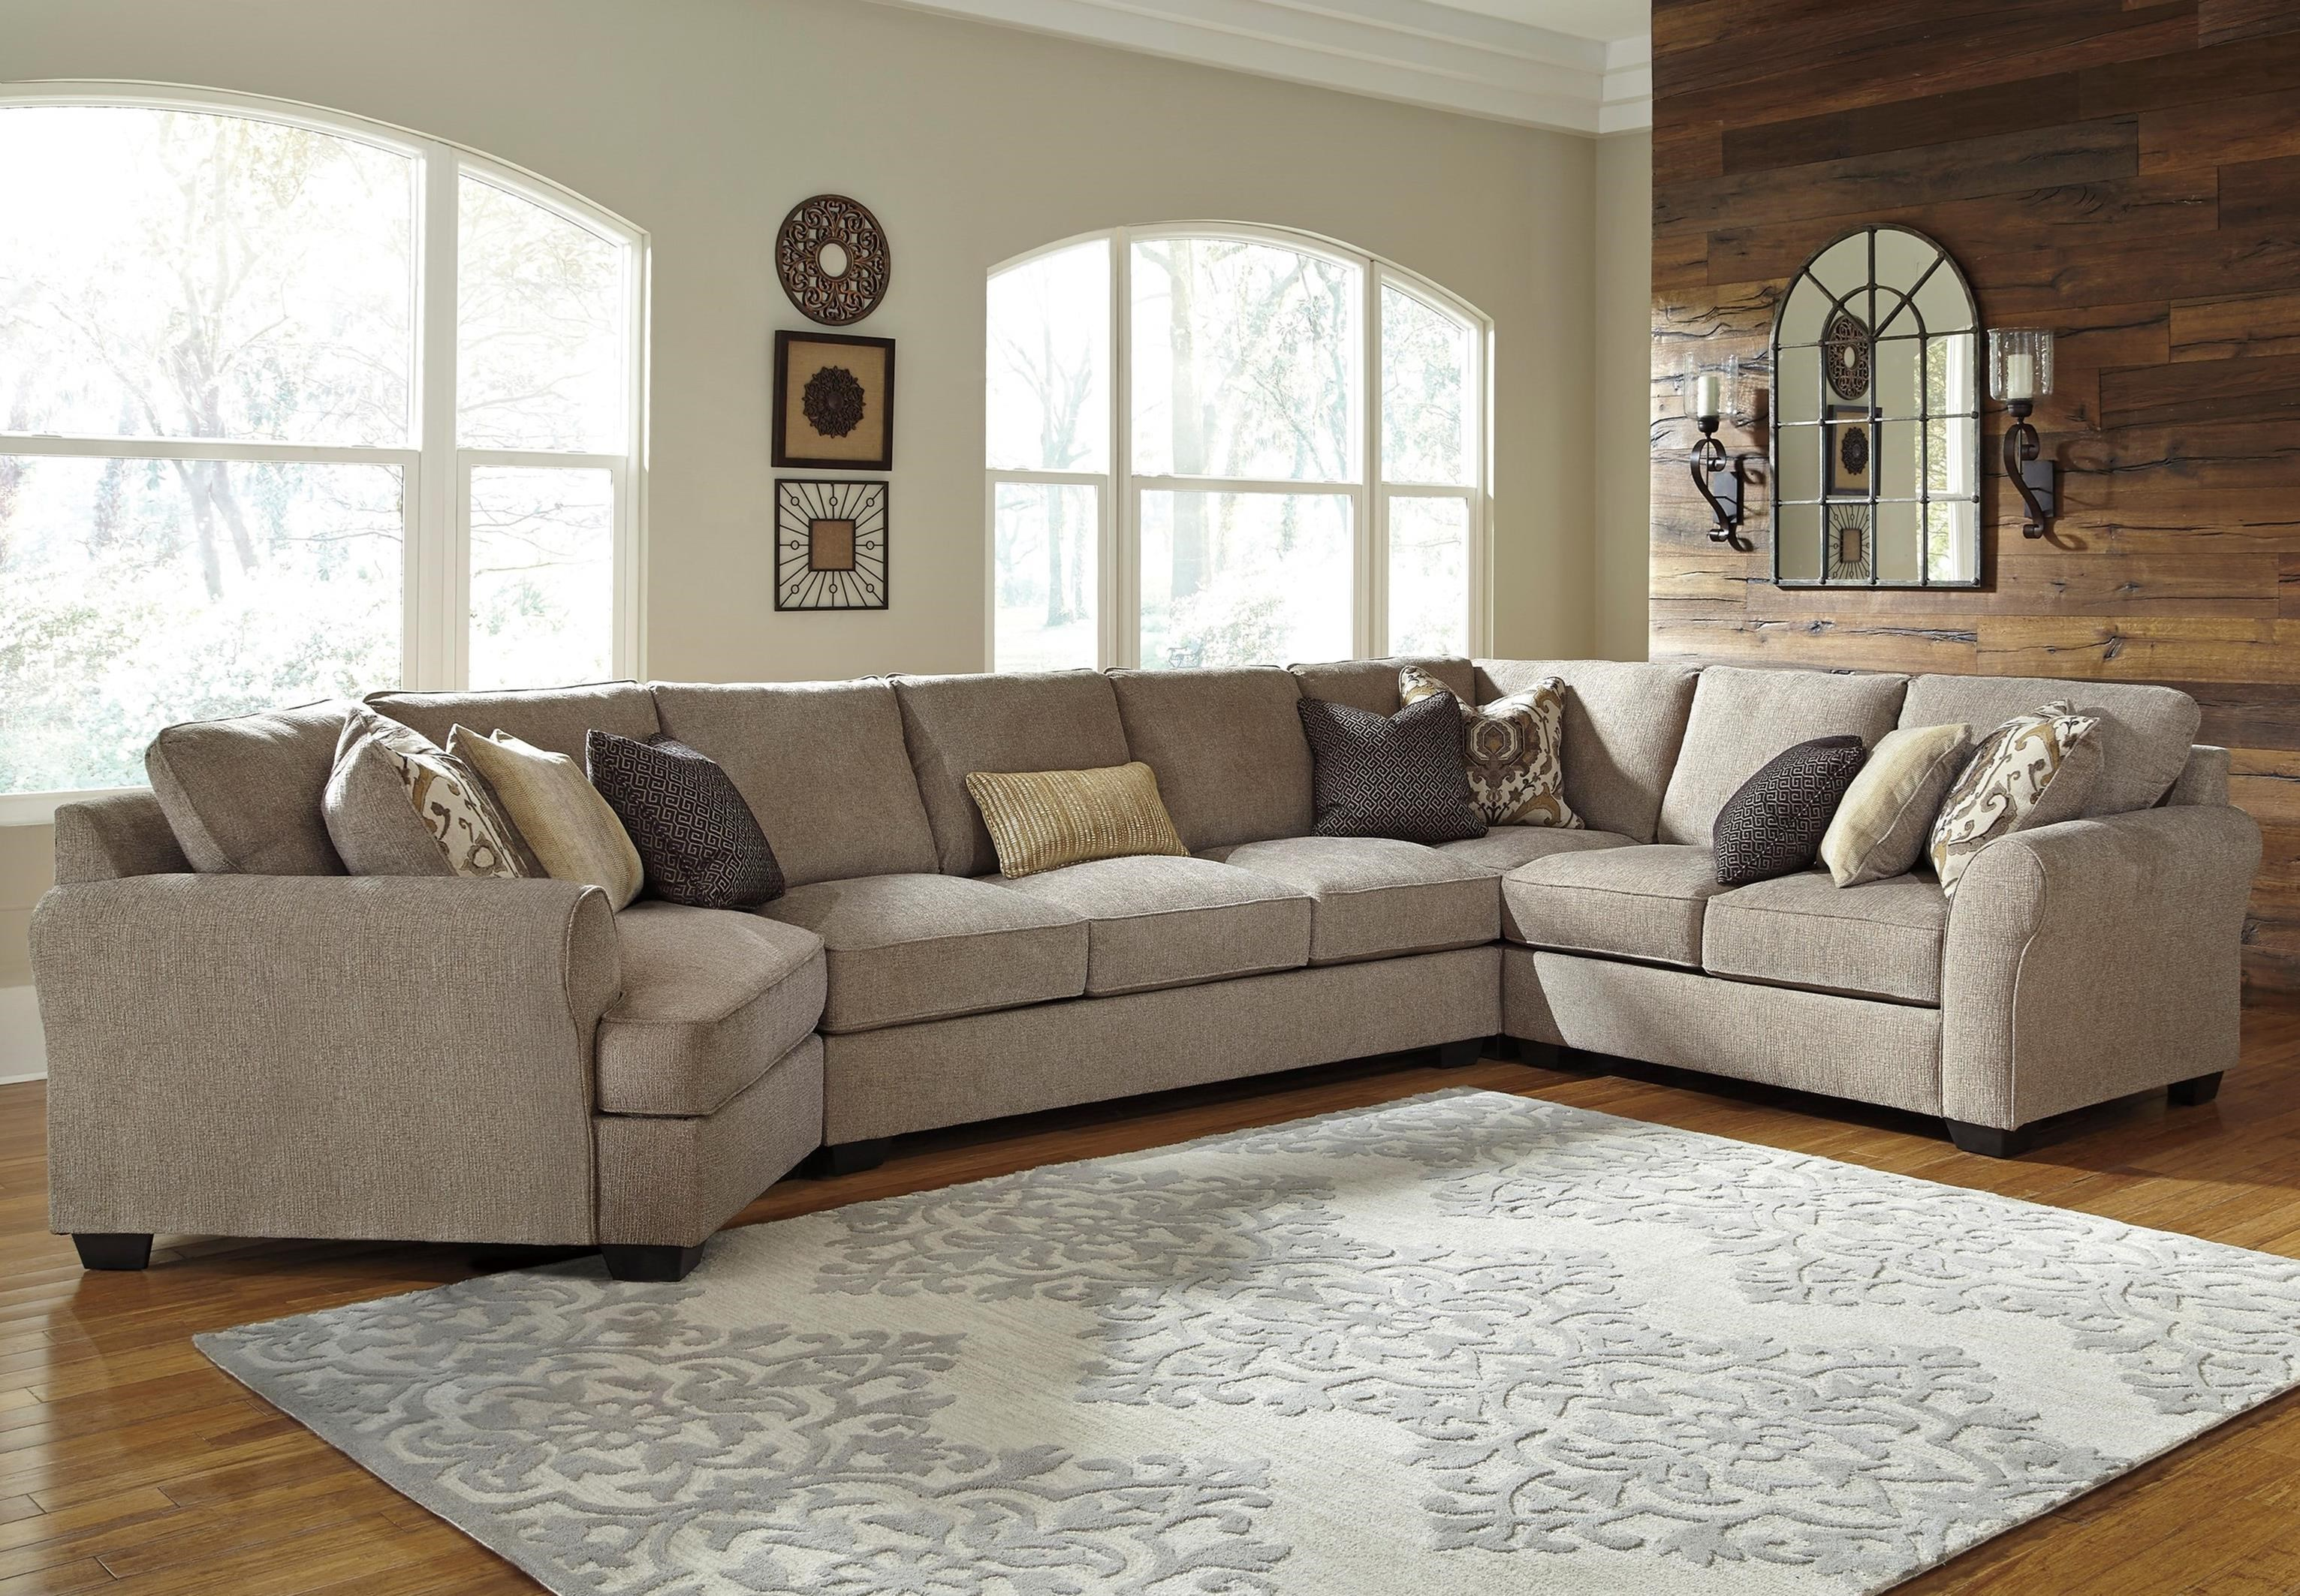 Ordinaire Benchcraft Pantomine 4 Piece Sectional With Left Cuddler U0026 Armless Sofa